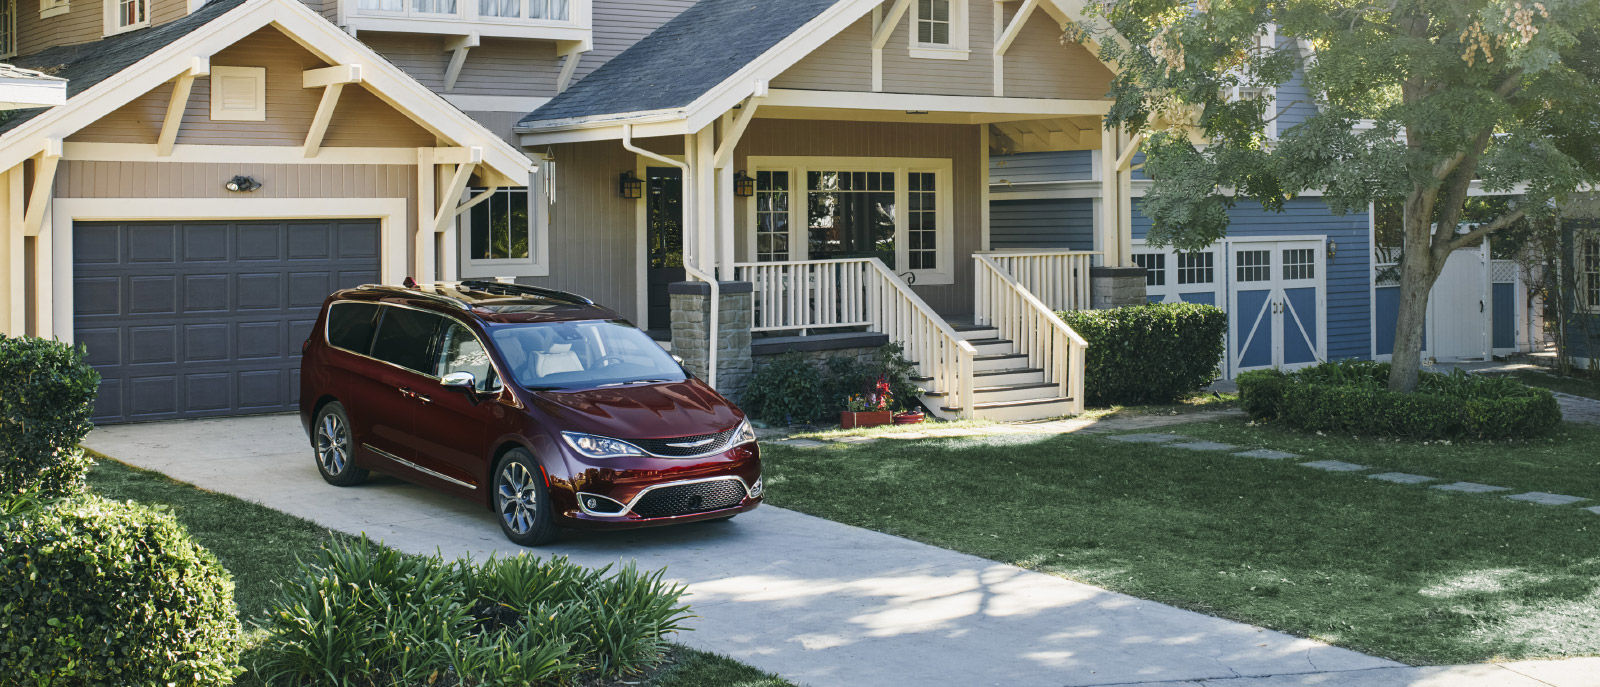 2017 Chrysler Pacifica driveway